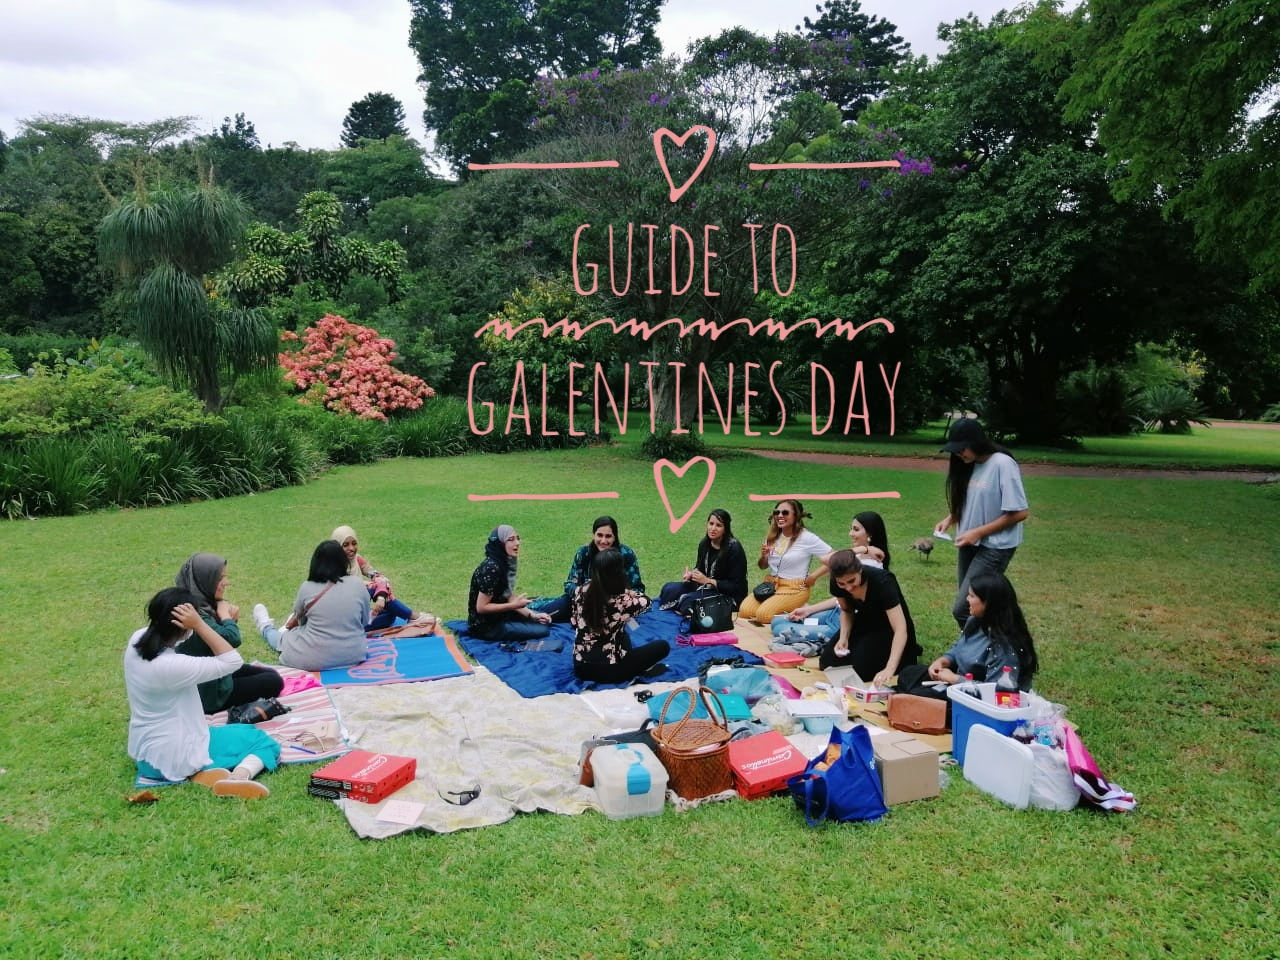 Galentines Day - a group of girl friends sitting in a circle at a park having a picnic